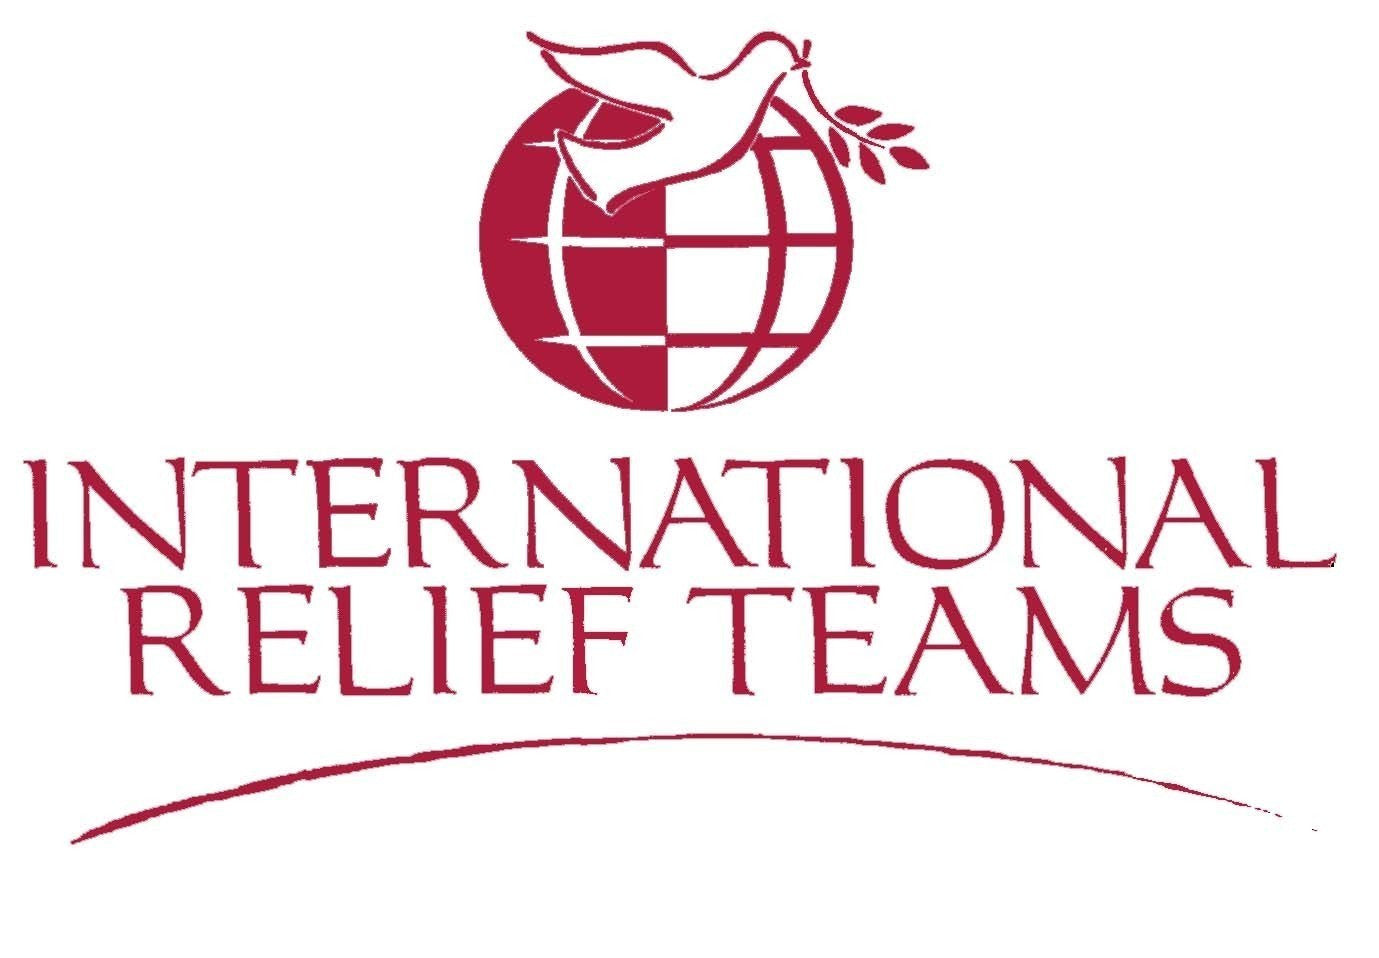 International Relief Teams logo